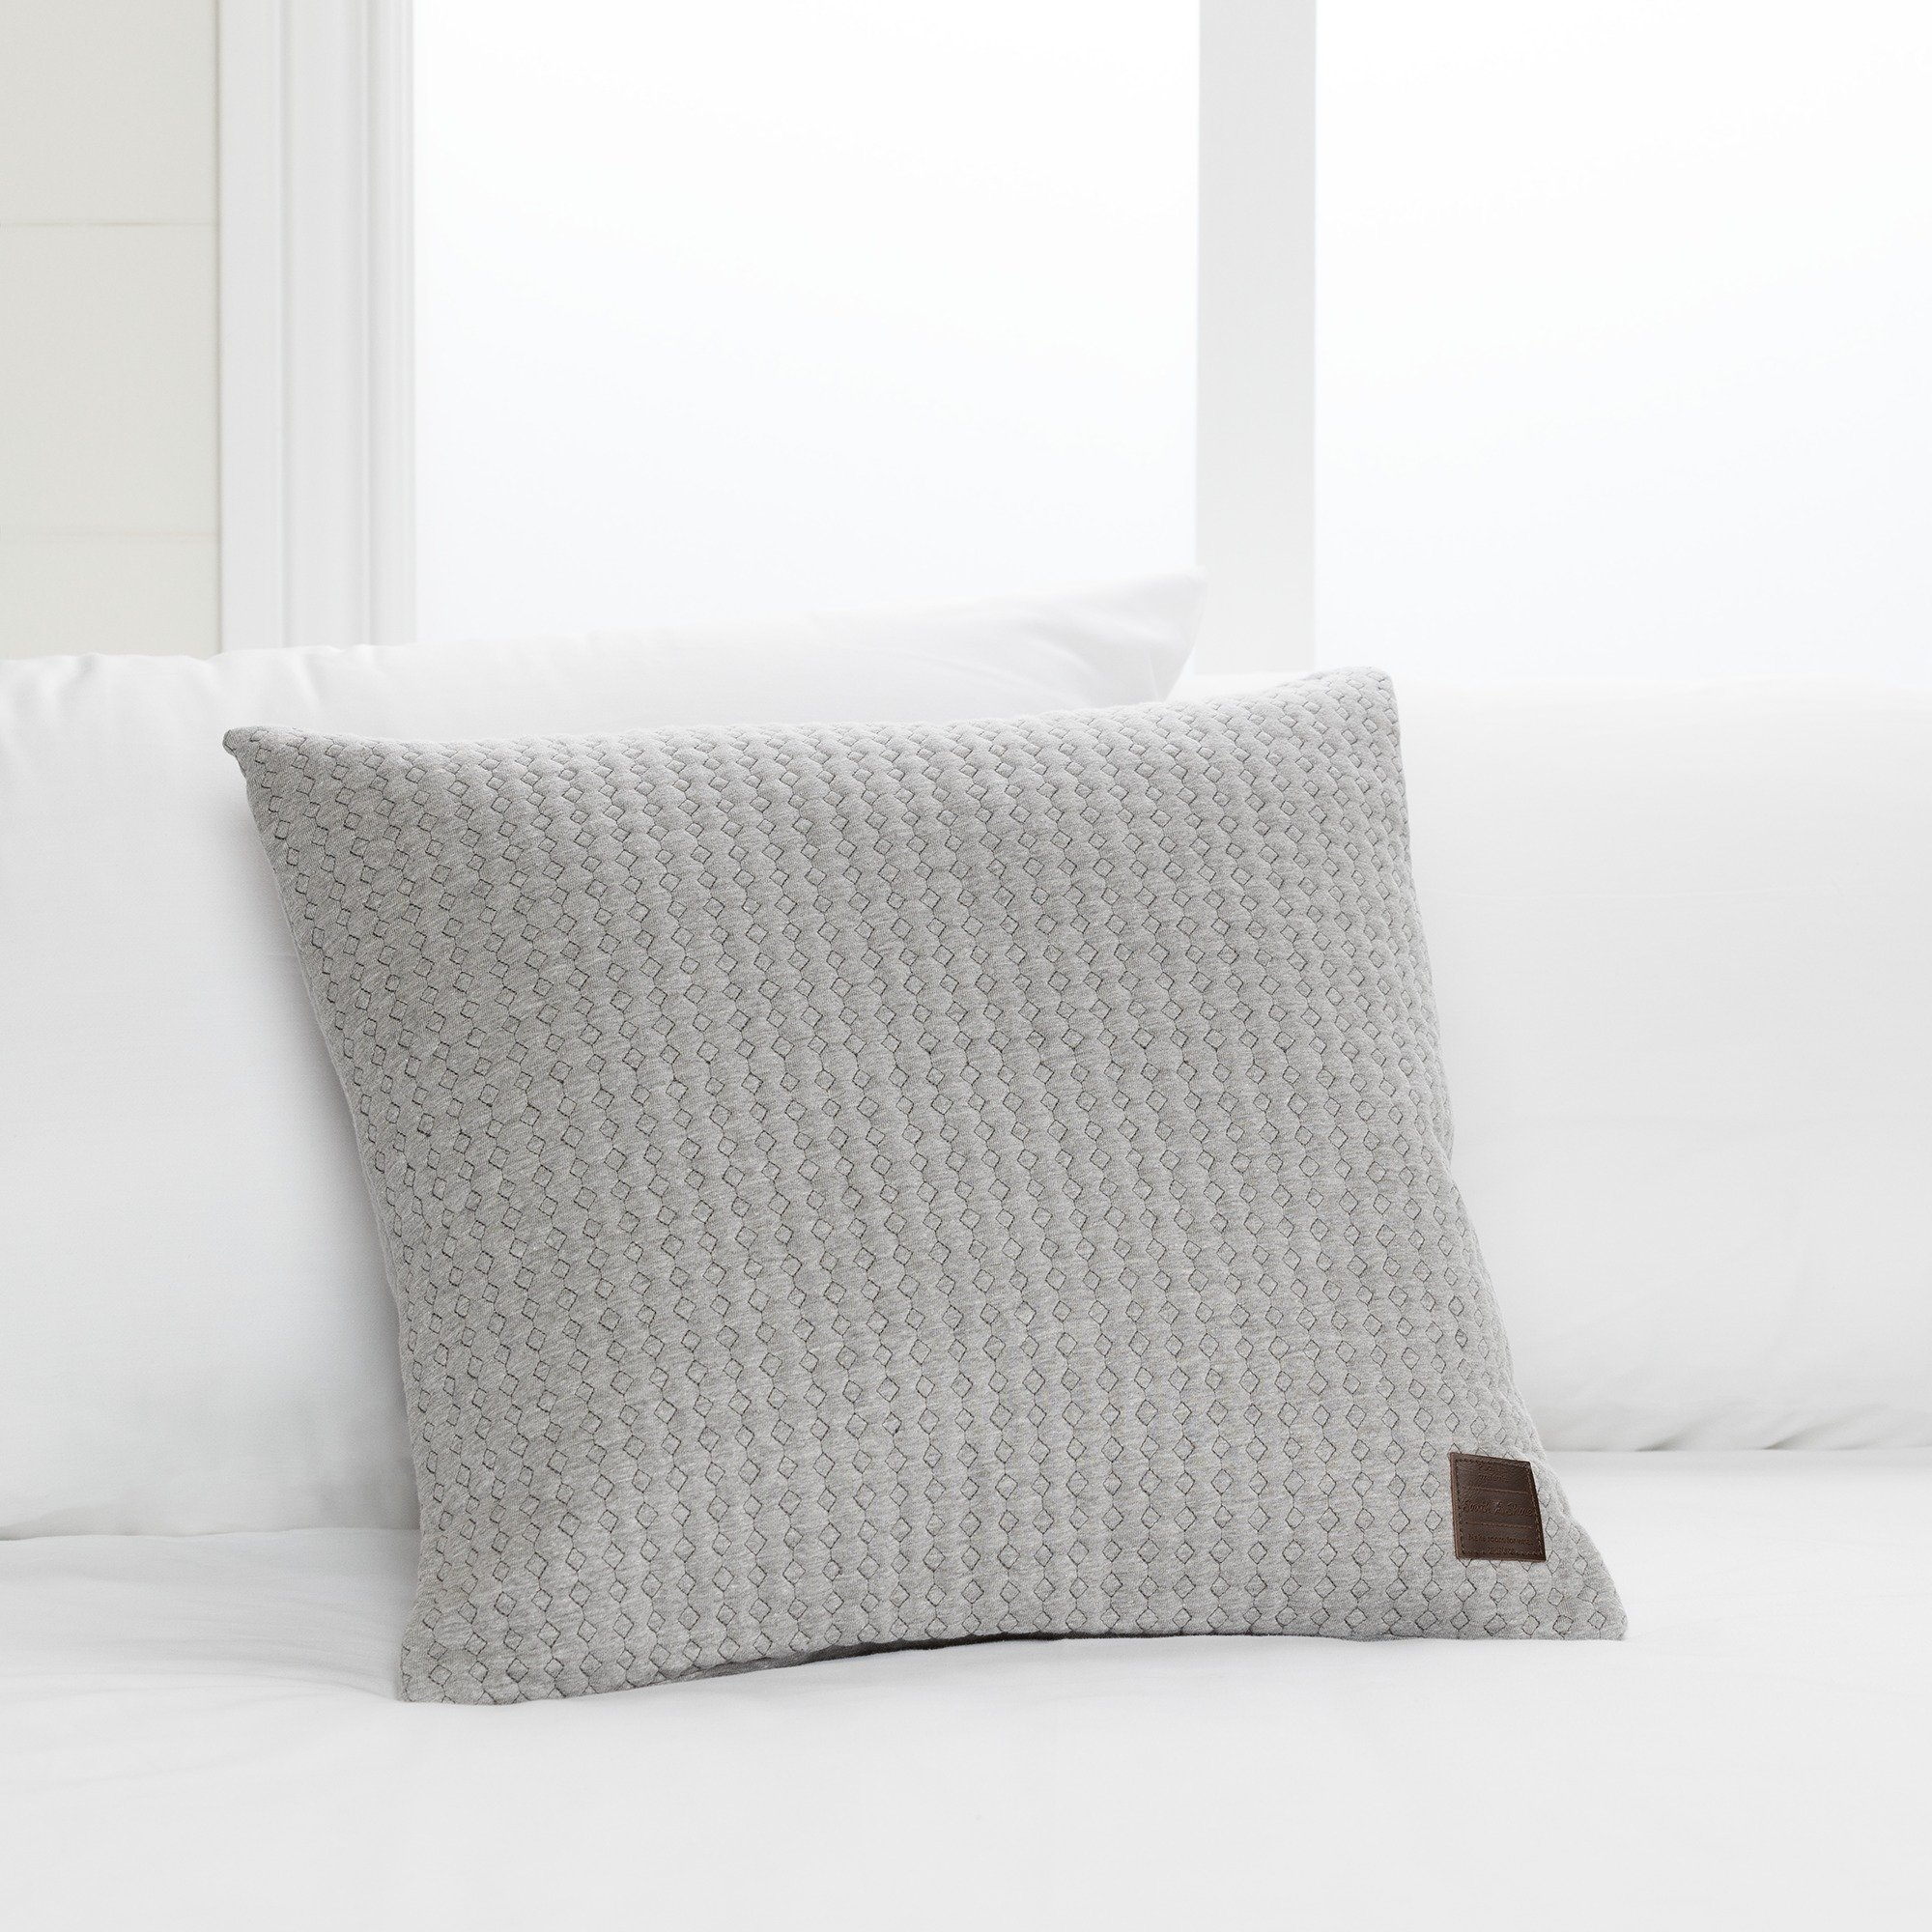 South Shore Lodge Decorative Quilted Throw Pillow 18'' L x 18'' W, Gray